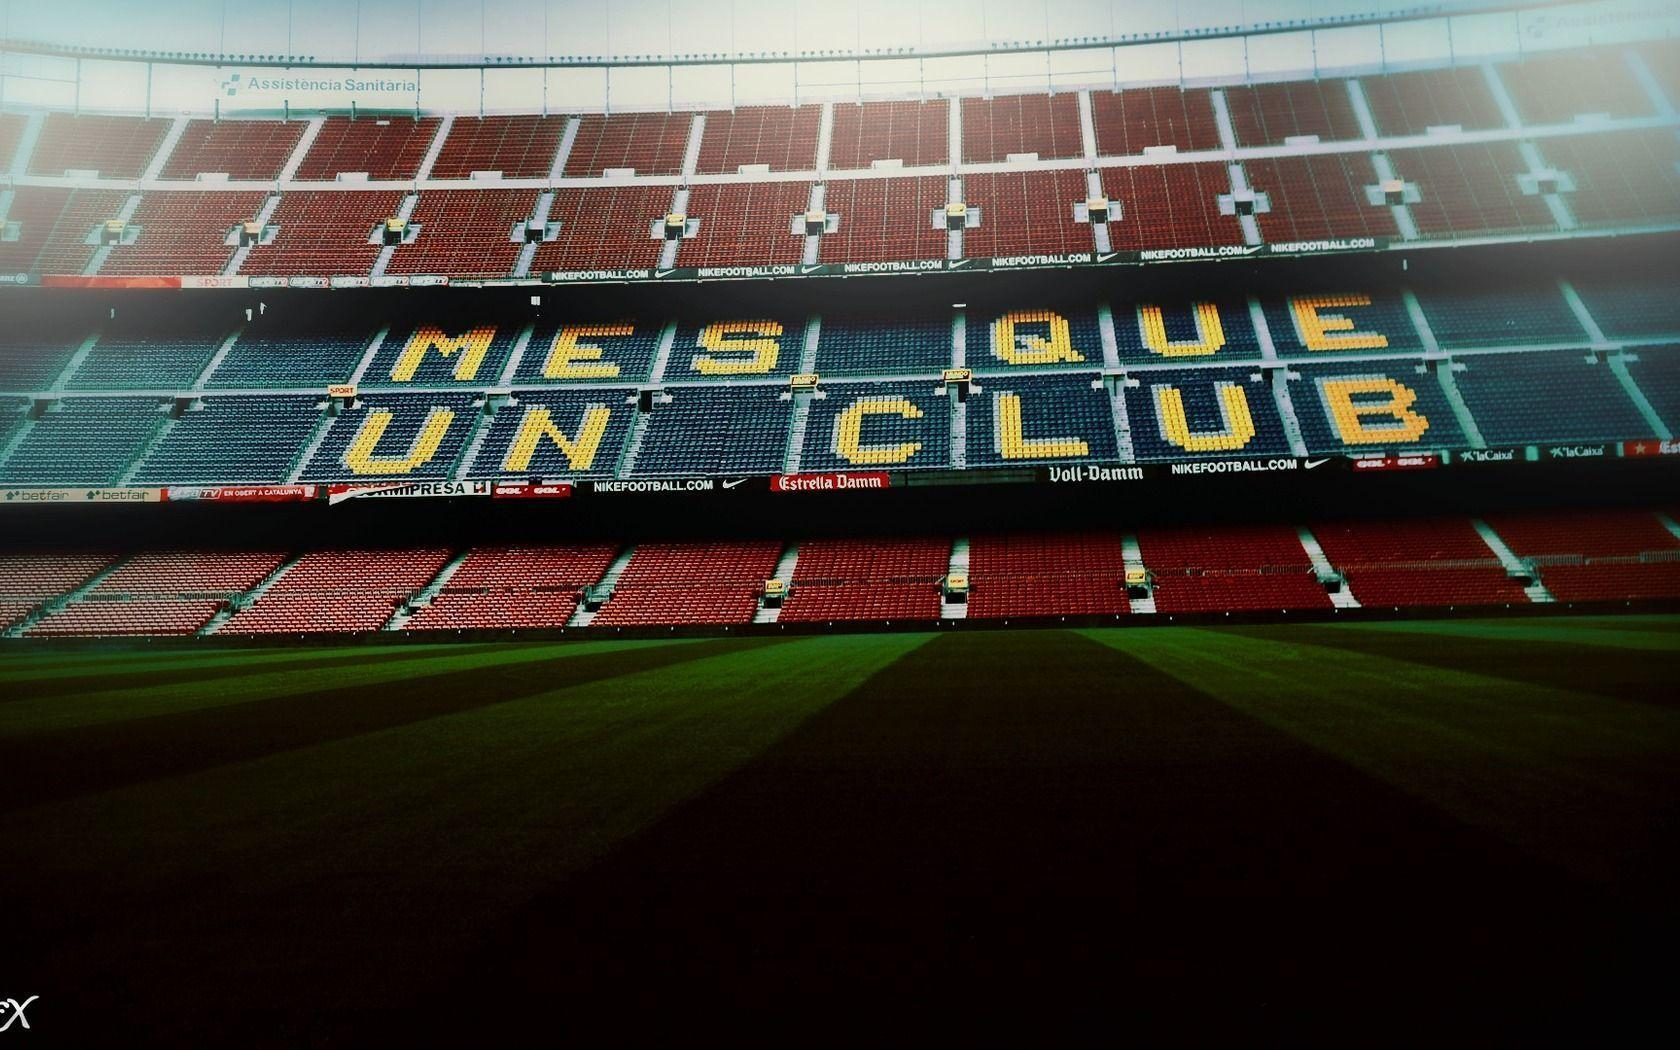 Camp Nou Wallpapers 1680x1050